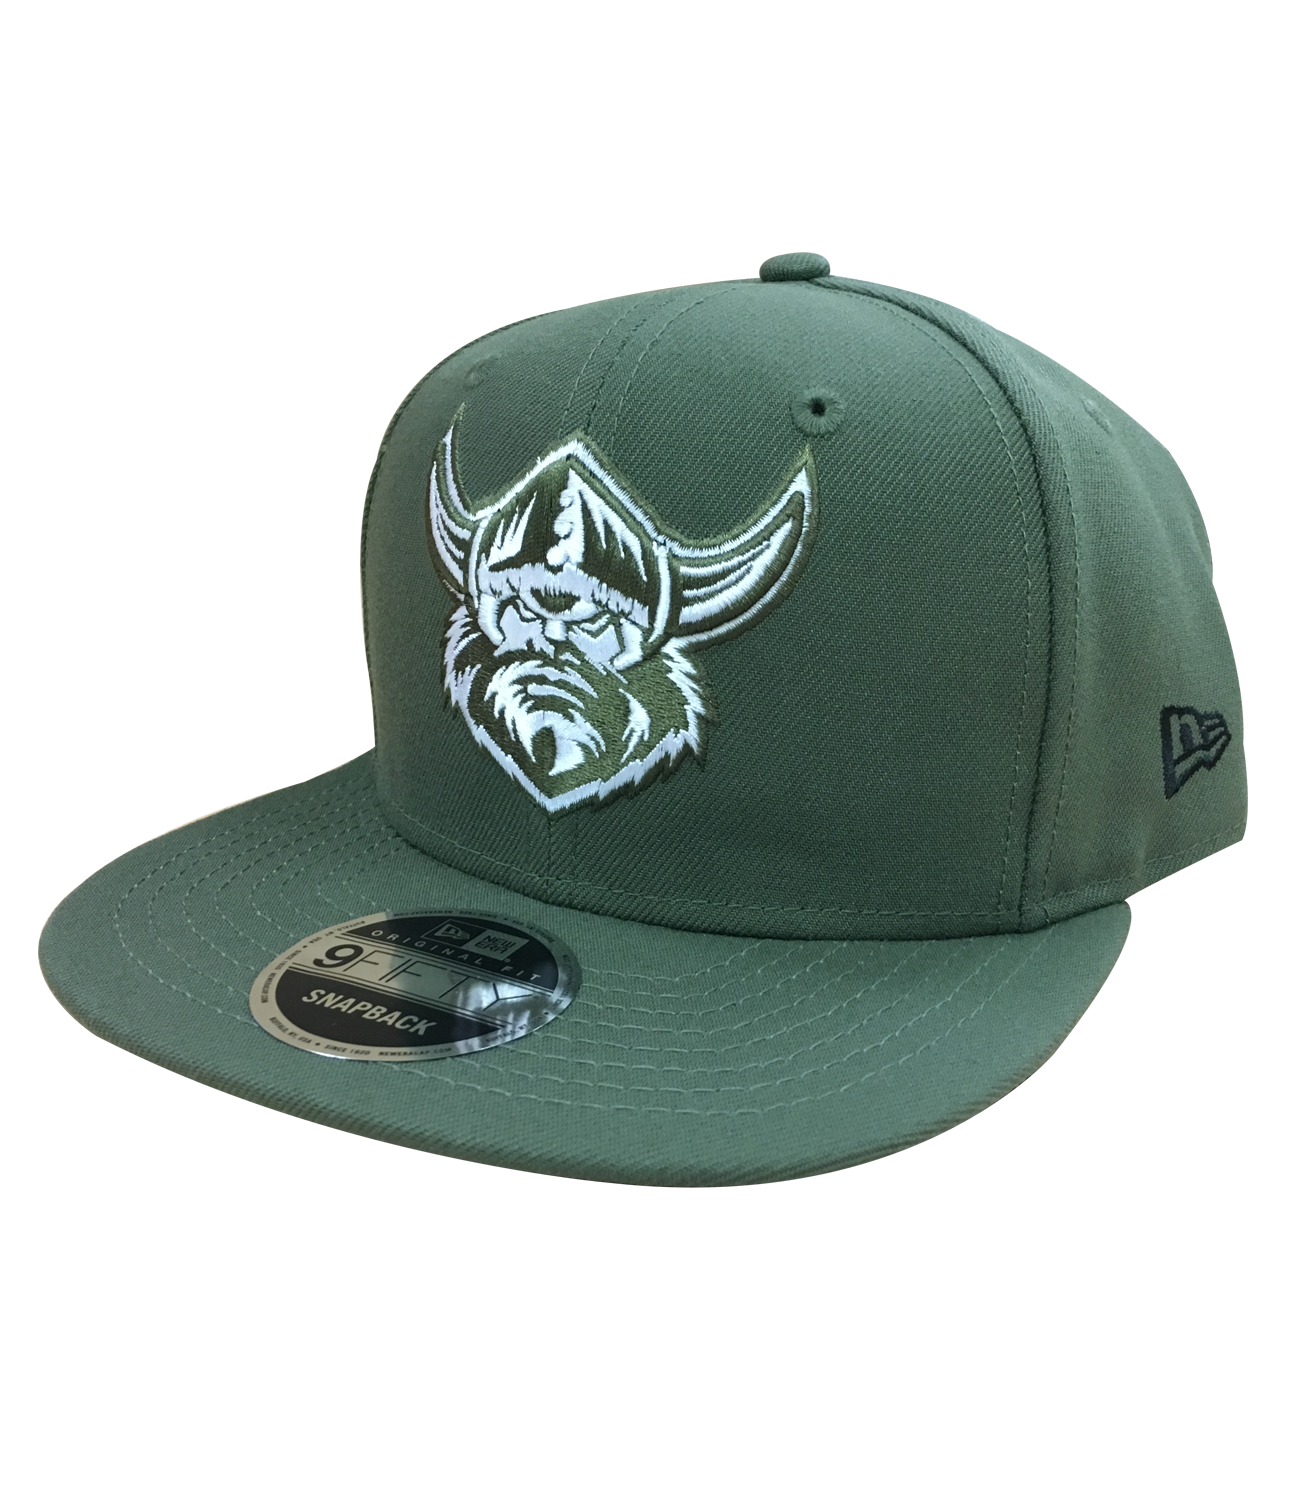 2017 Raiders New Era 9FIFTY 'New Olive' Cap / ADULT